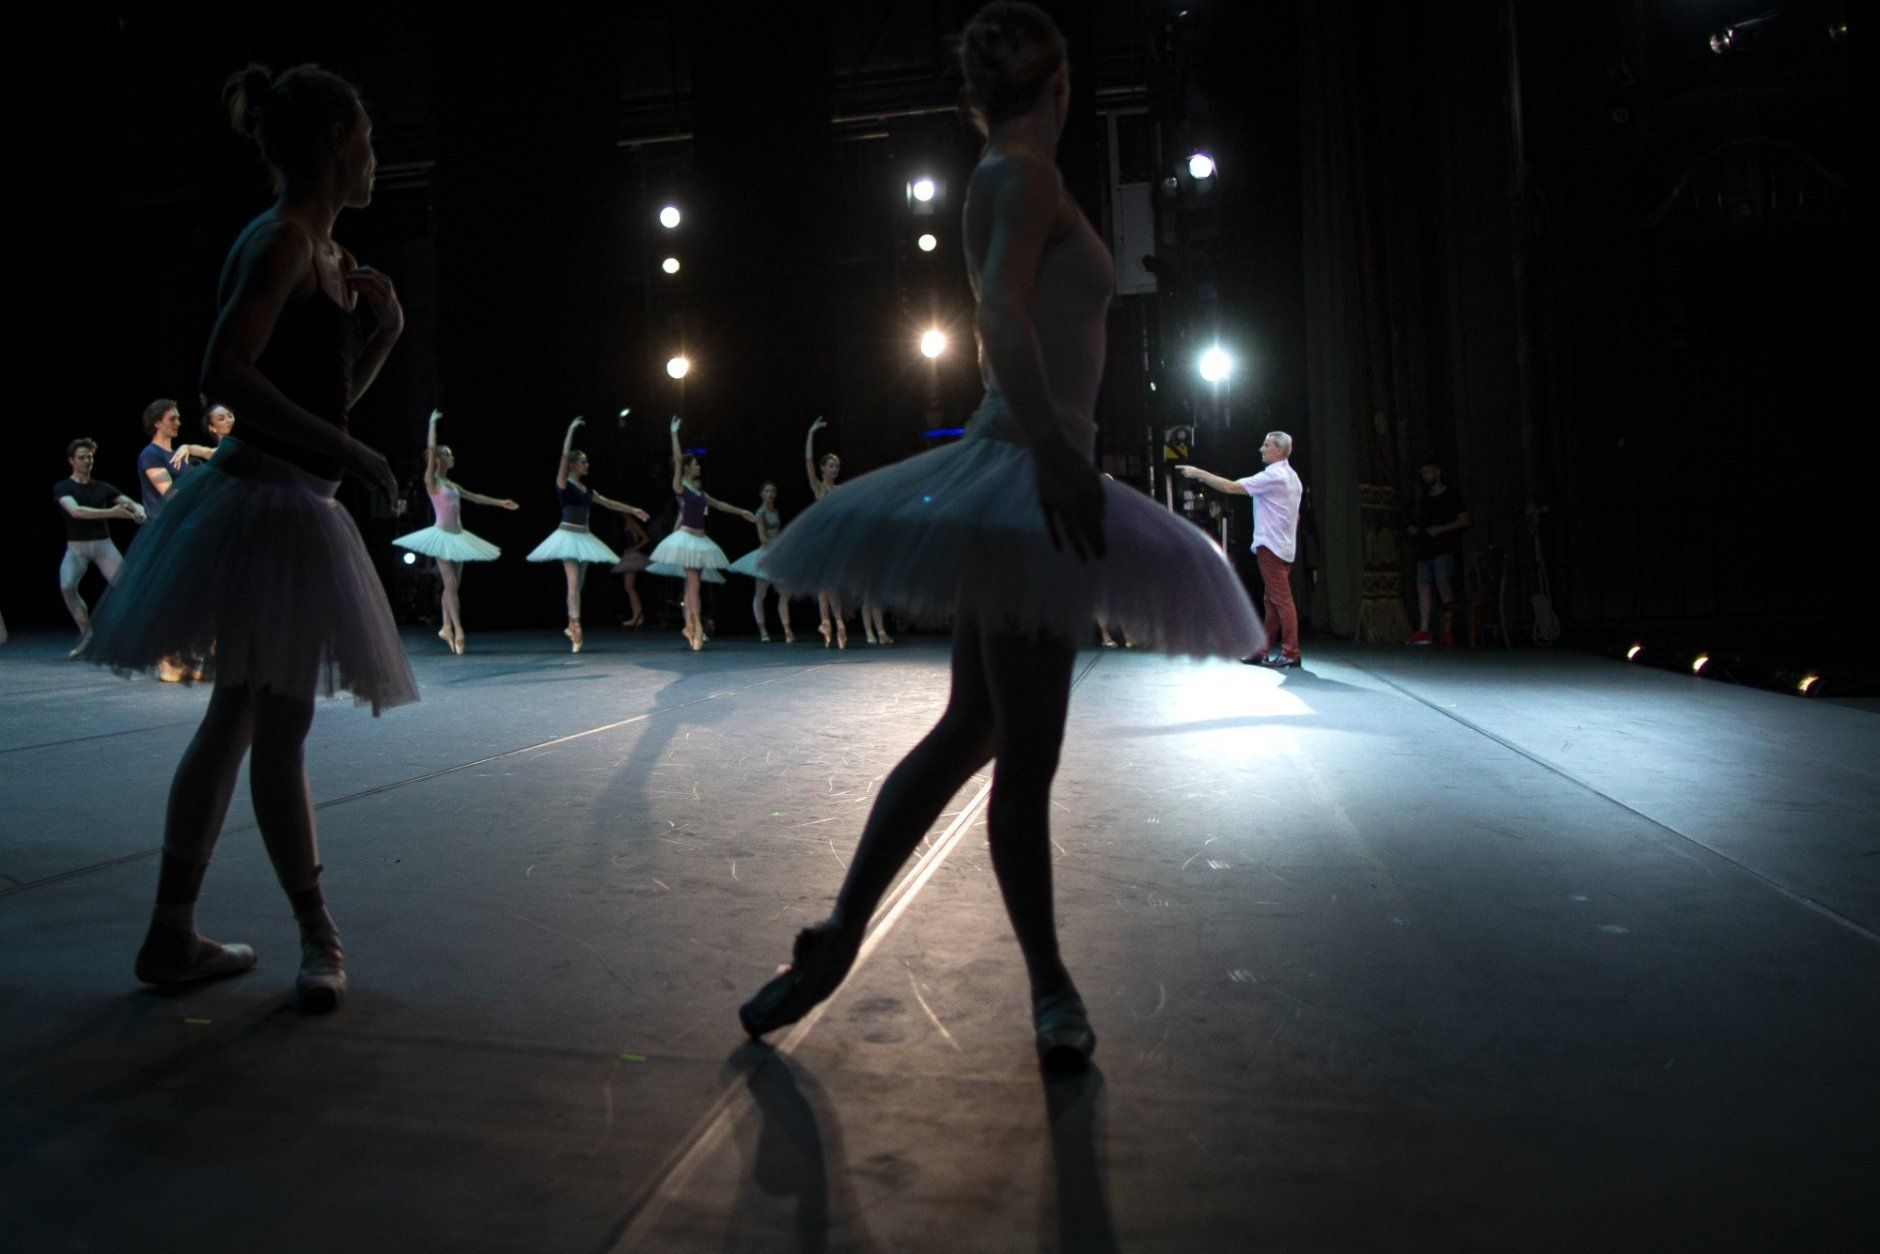 In this photo taken on Tuesday, June 11, 2019, The ballet director of the Bolshoi Theater Makhar Vaziev gestures as he conducts a rehearsal in the Bolshoi Theater in Moscow, Russia. Backstage, the dancers warm up, chalk their ballet shoes, or sit checking their social media, but once onstage, the ballet director at the Bolshoi Makhar Vaziev is an exacting ballet master who scrutinizes technique closely and spares no one's feelings if he sees a mistake.   (AP Photo/Alexander Zemlianichenko)